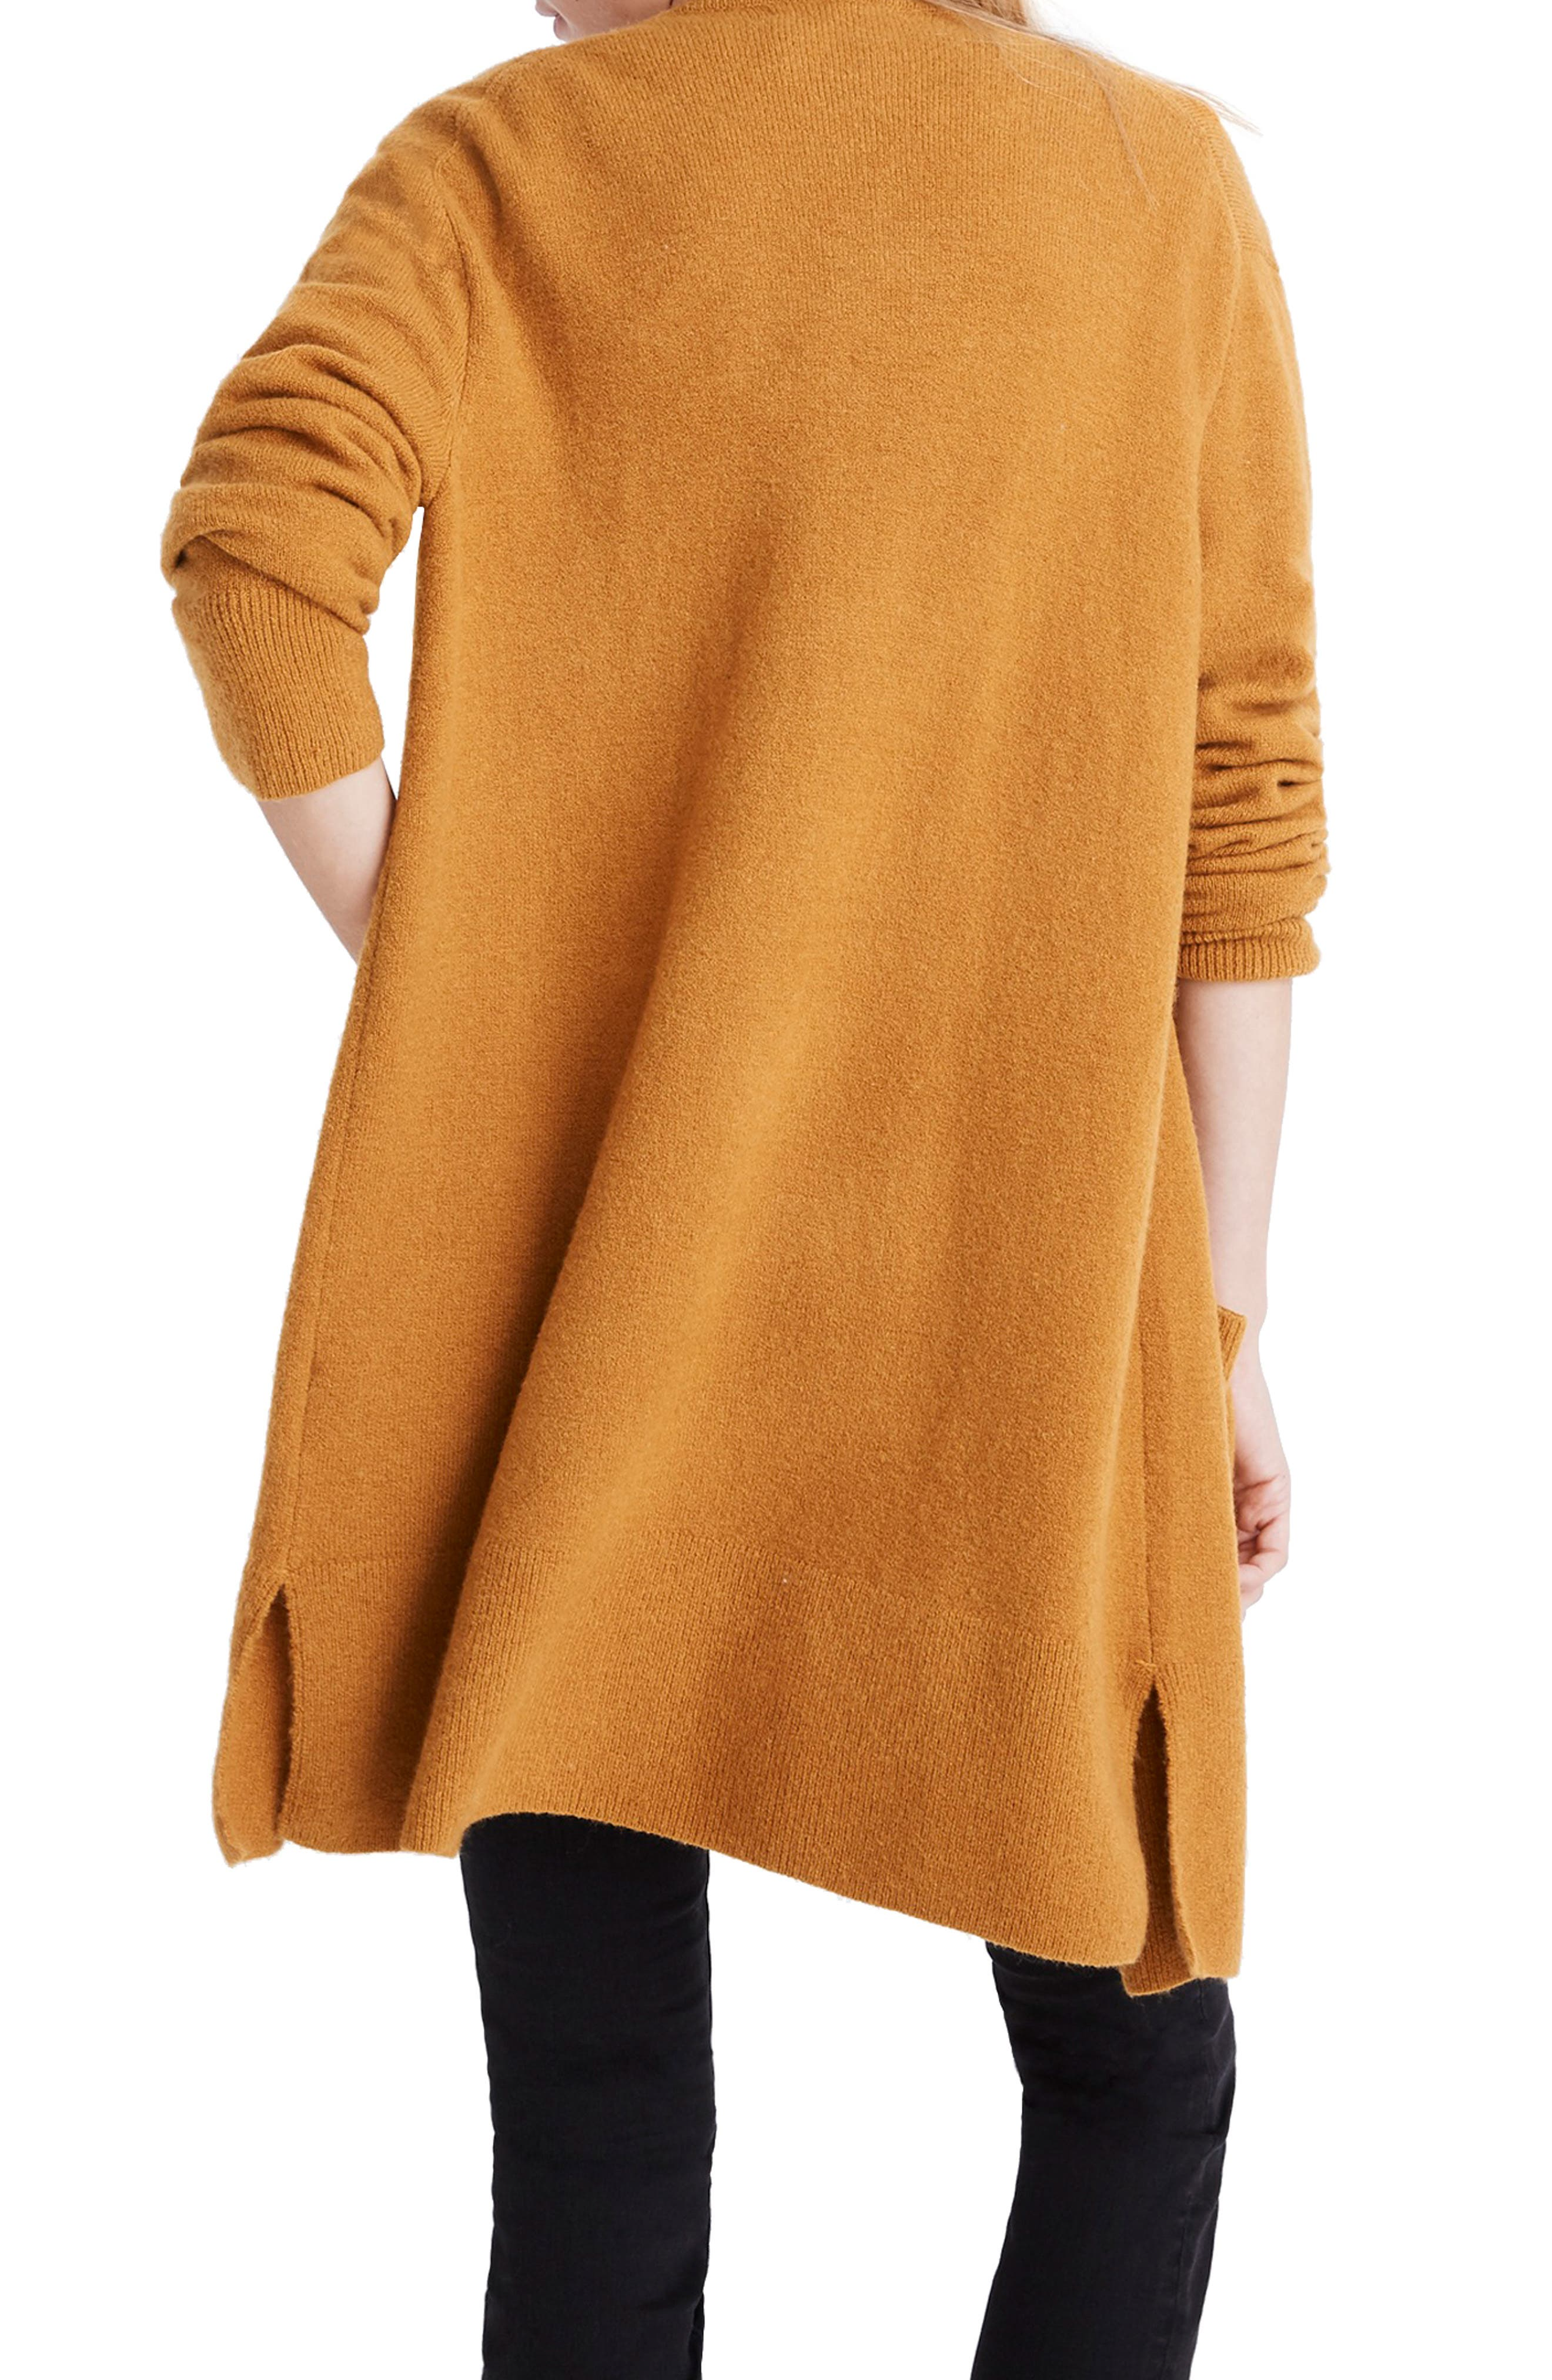 MADEWELL,                             Kent Cardigan Sweater,                             Alternate thumbnail 2, color,                             GOLDEN HARVEST